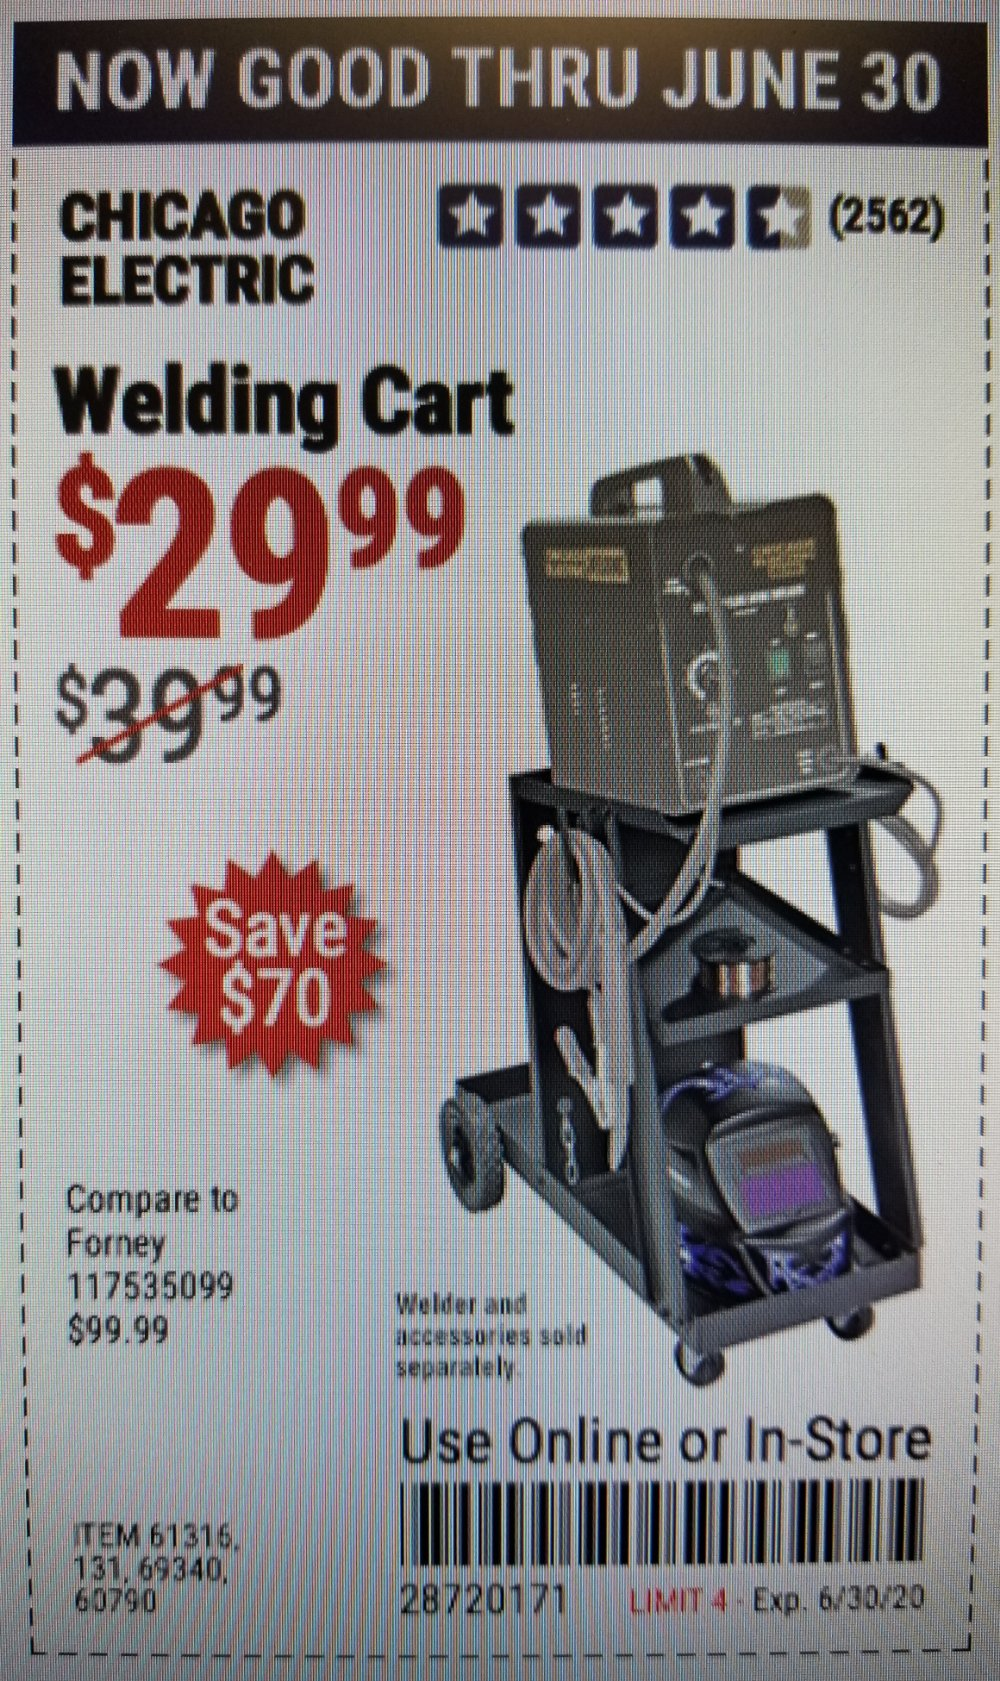 Harbor Freight Coupon, HF Coupons - Chicago Electric Welding Cart